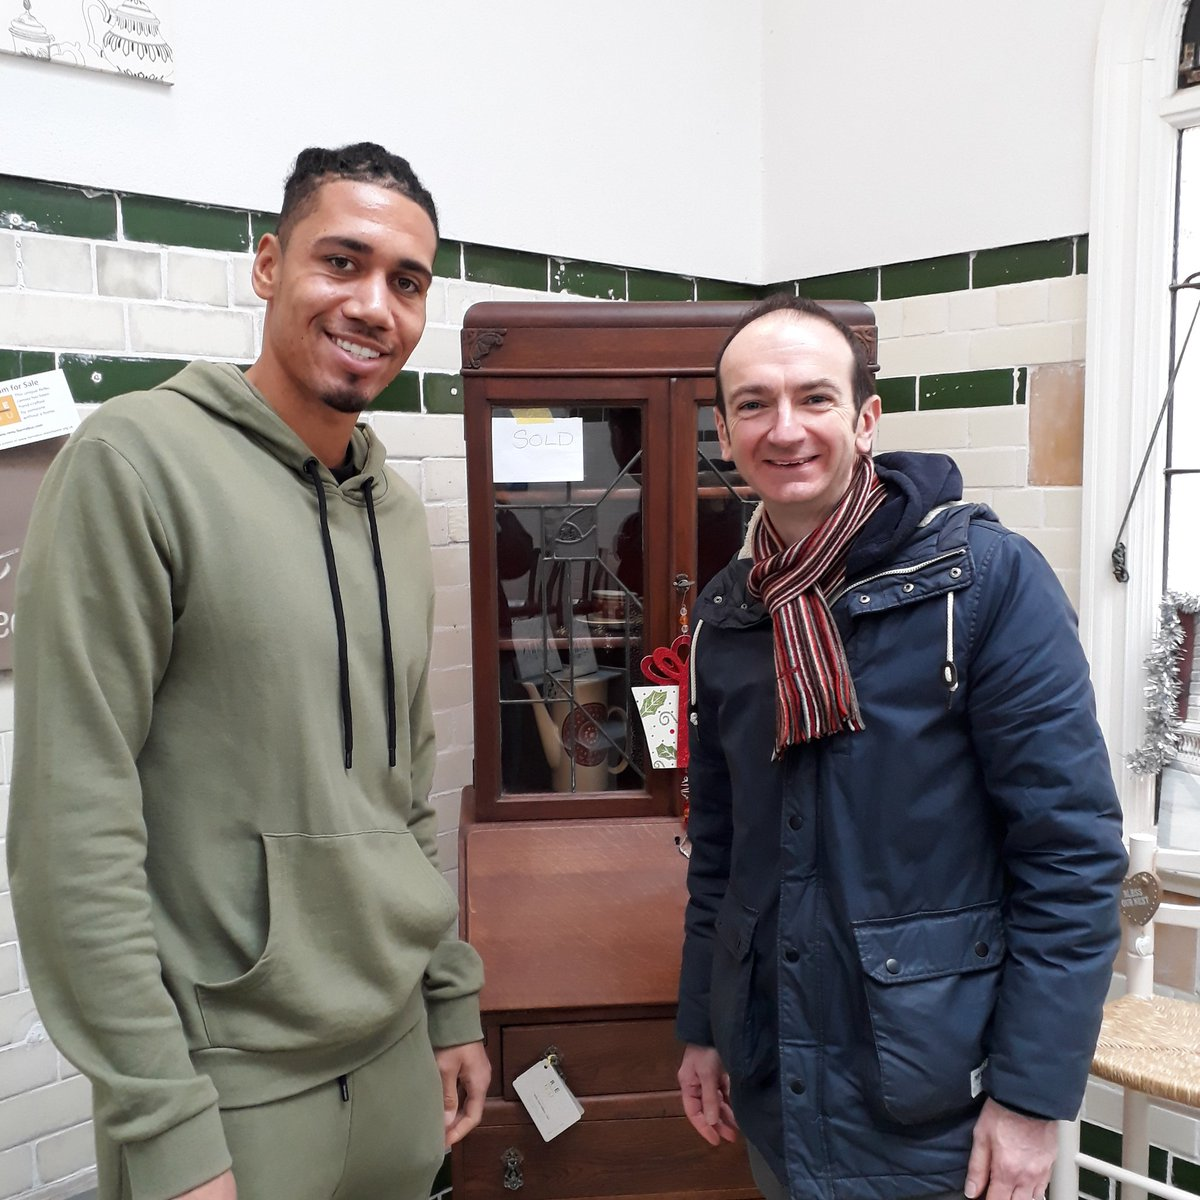 Thanks to @ChrisSmalling for popping by the #veganchristmasfestival and our #renu showcase - head over to his Facebook page to join his #29for29 campaign -  & see more furniture at http://www.renu-barnabus.com  #hope #vegan #endinghomelessnessmcr – at Victoria Baths